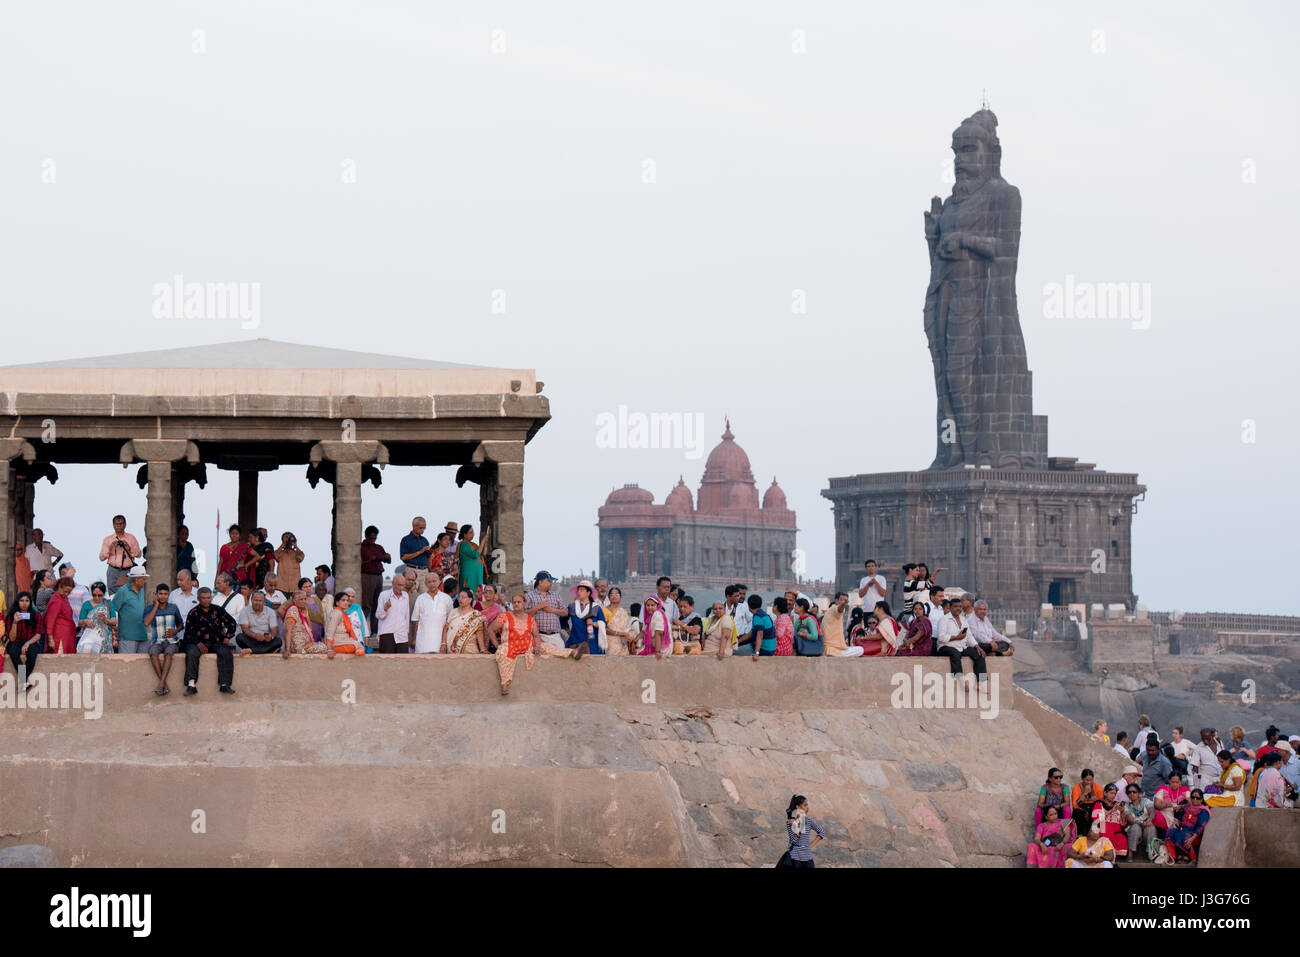 Crowds of people enjoying the sunset in front of the Thiruvalluvar statue in Kanyakumari, India - Stock Image